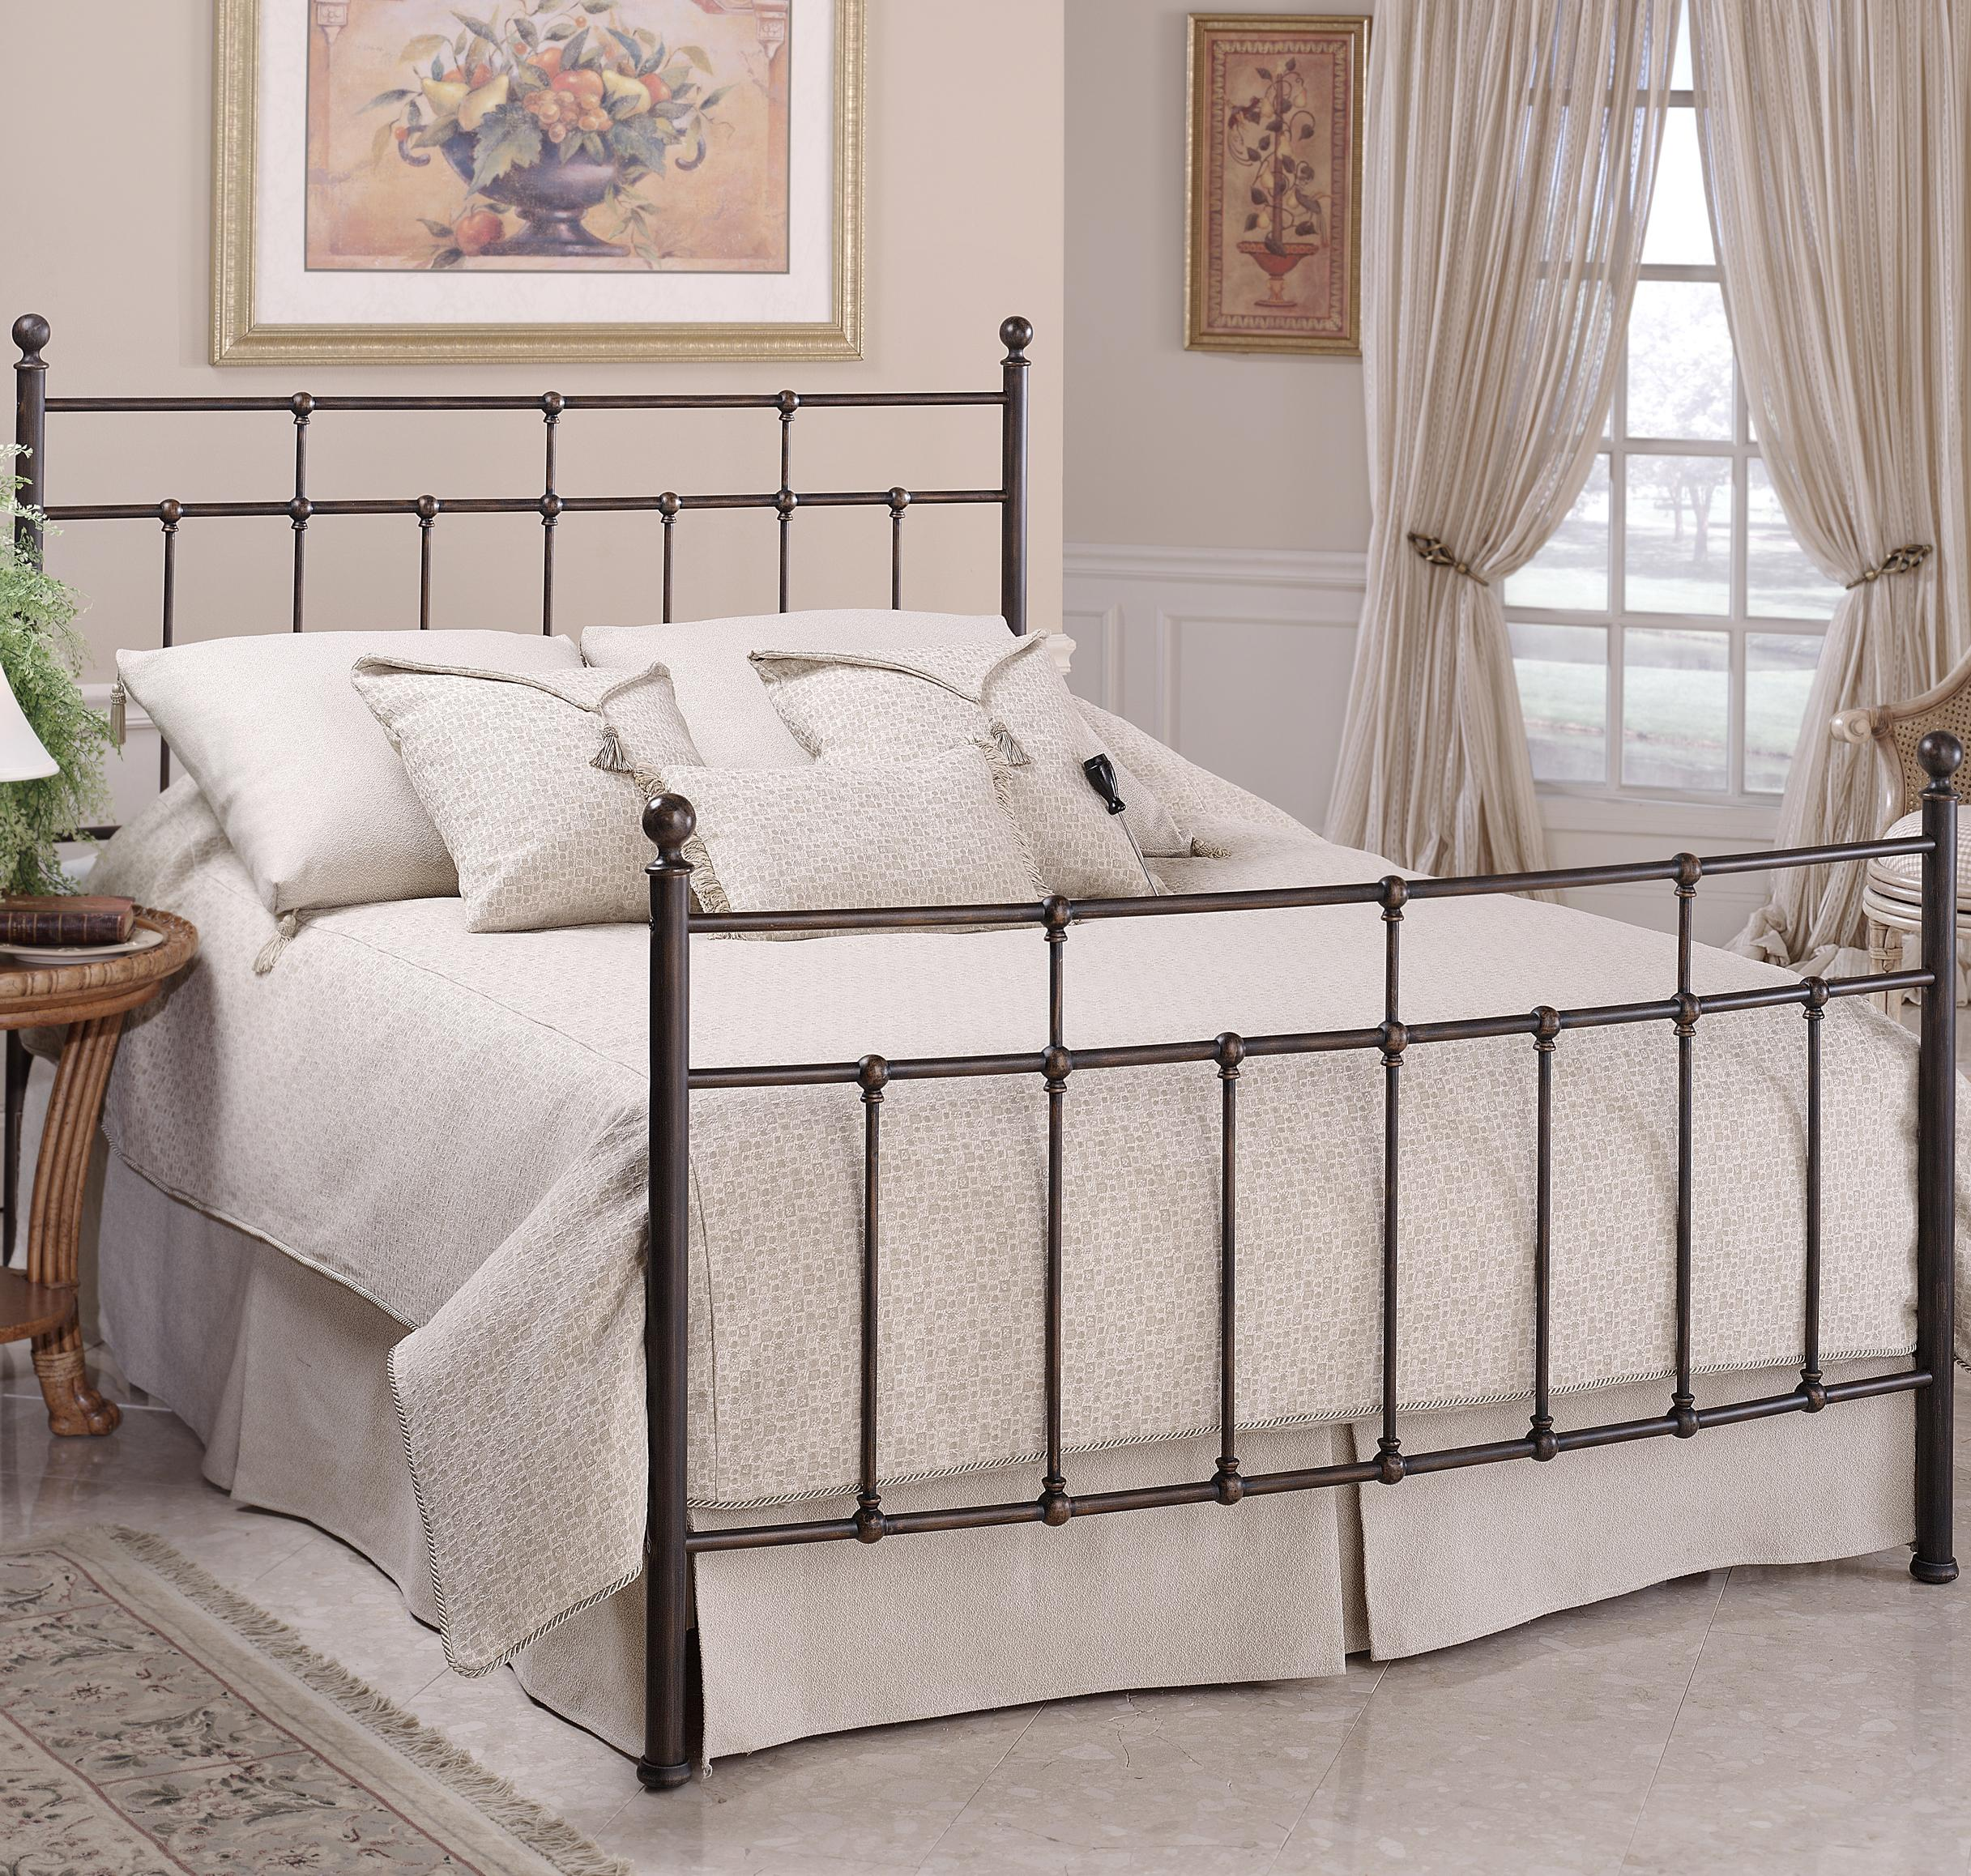 Queen Providence Bed